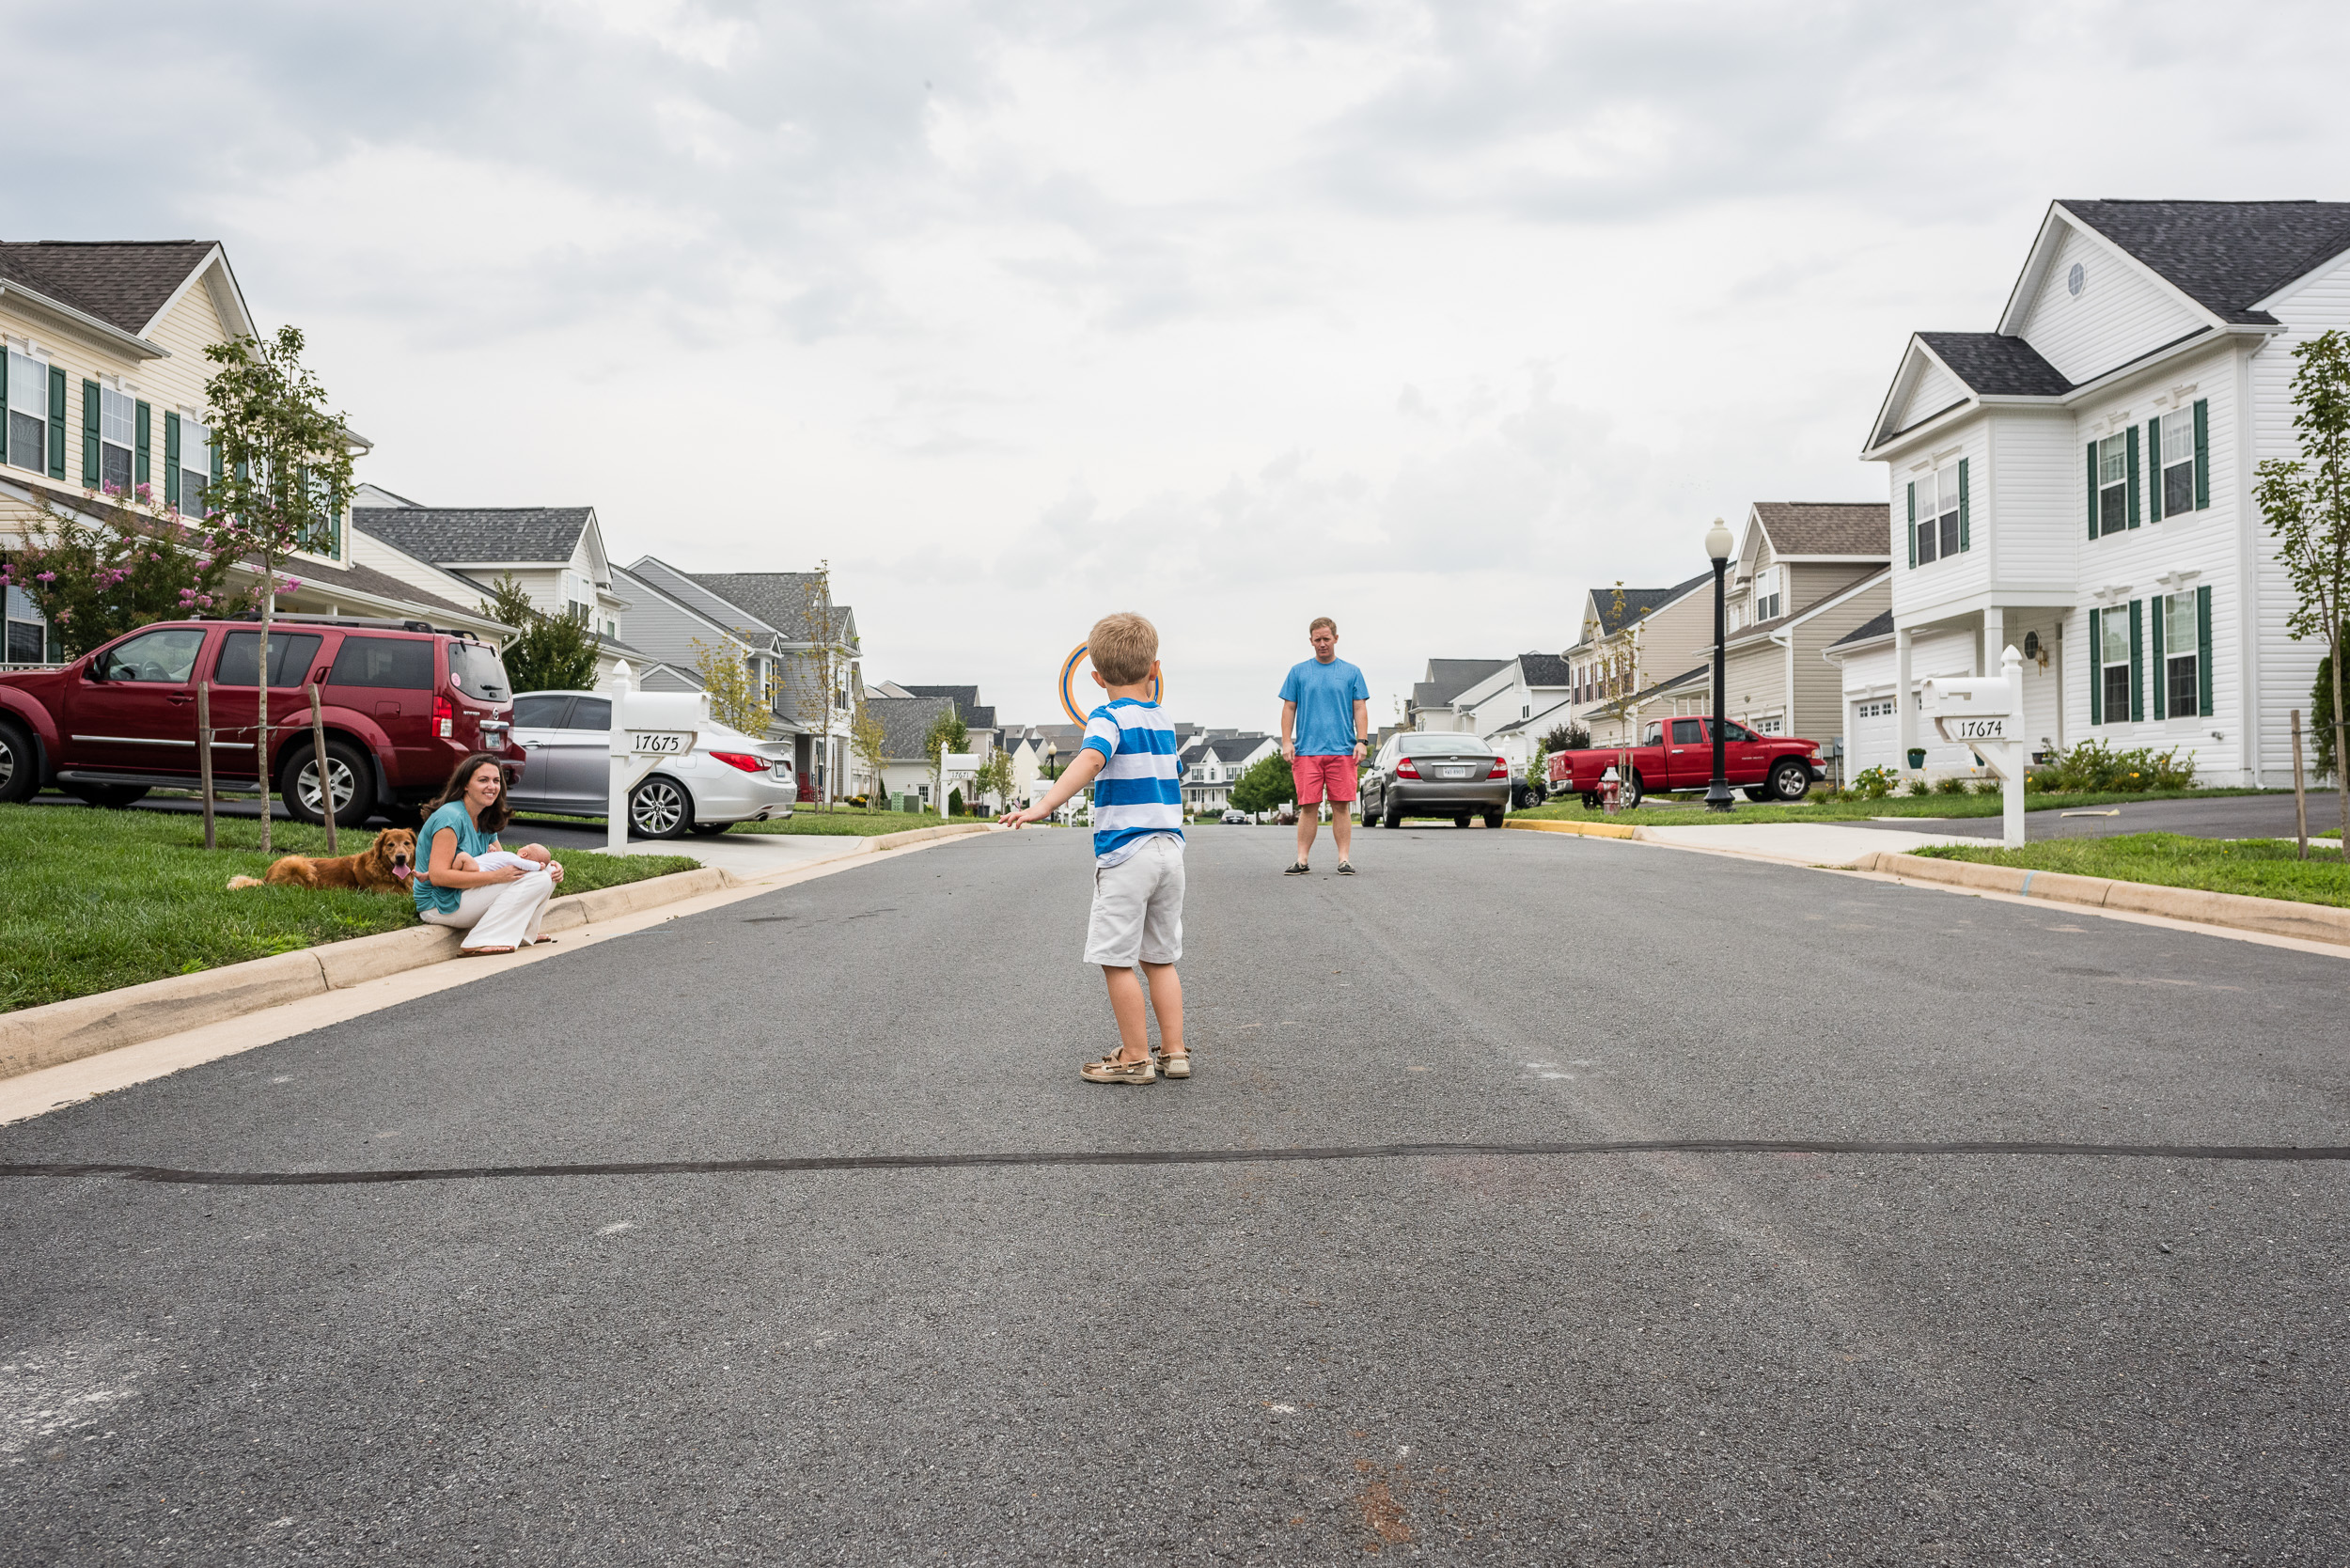 Father and son playing frisbee in street in Northern Virginia by Family Photographer Nicole Sanchez